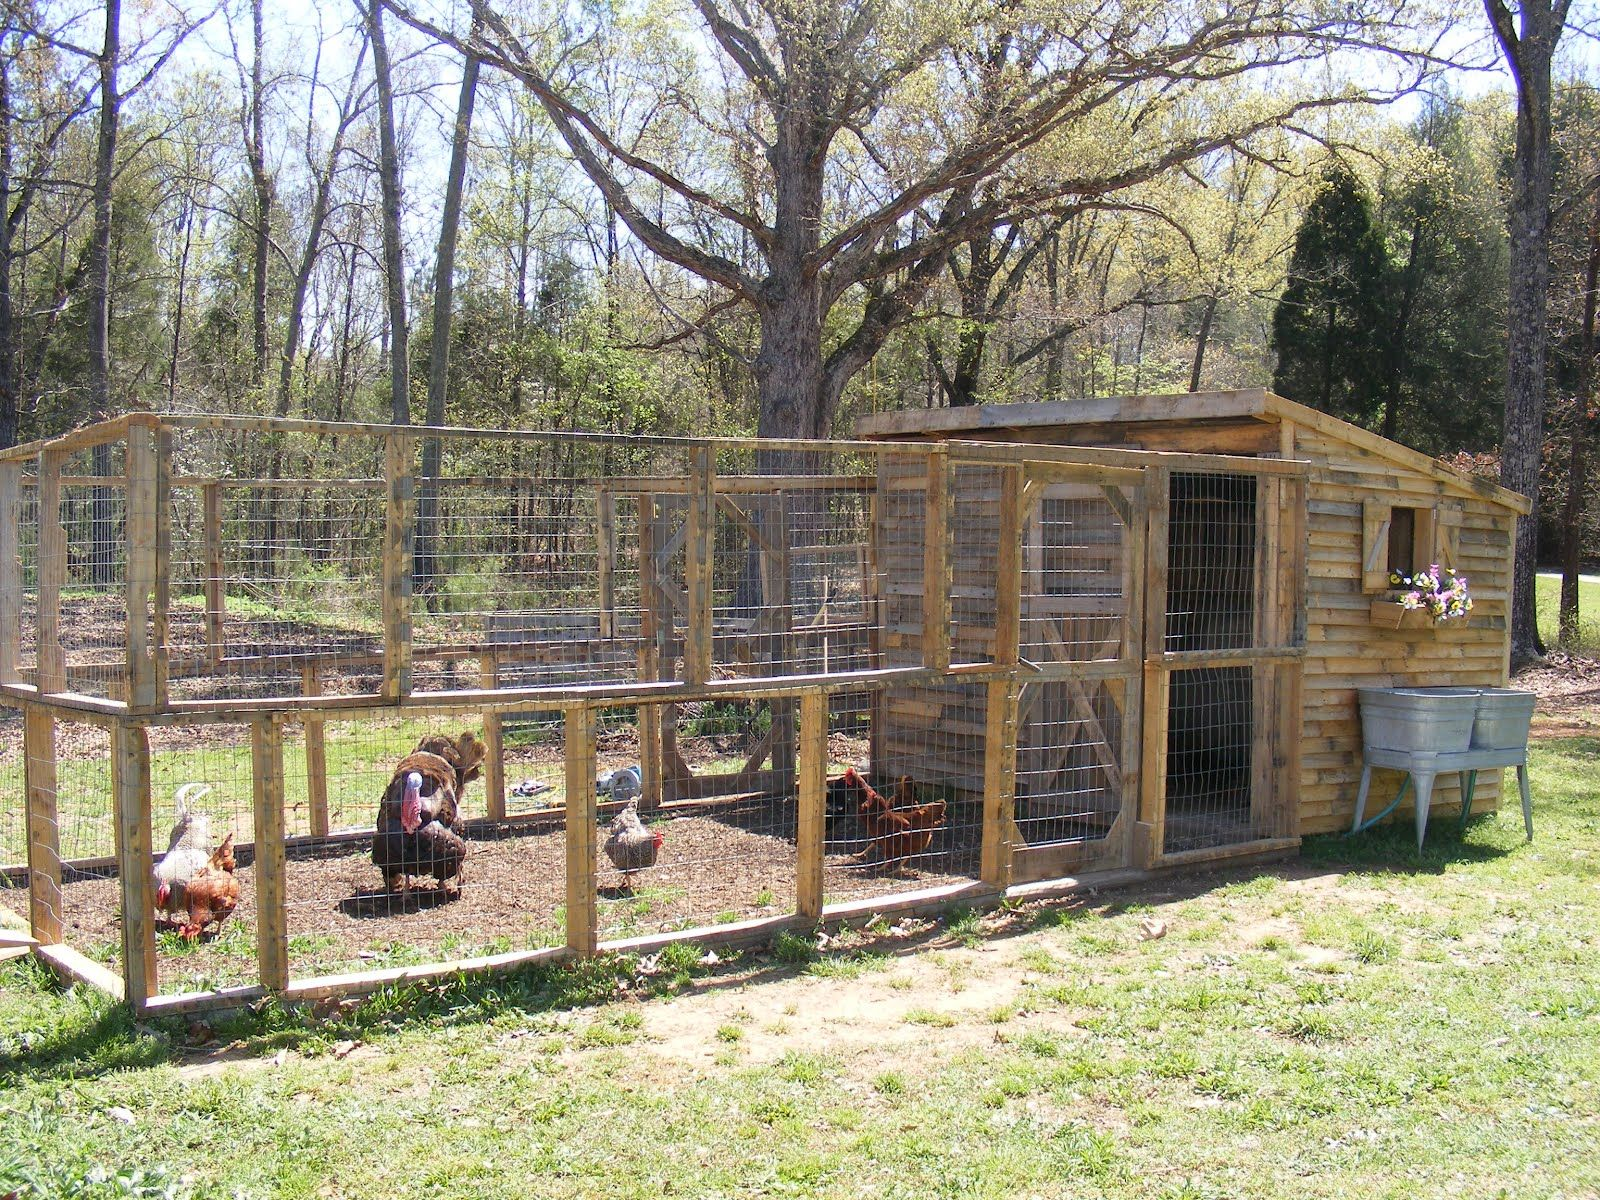 House Made From Pallets Chicken Coop Made From Pallets Reederbunch The Coop Chickens